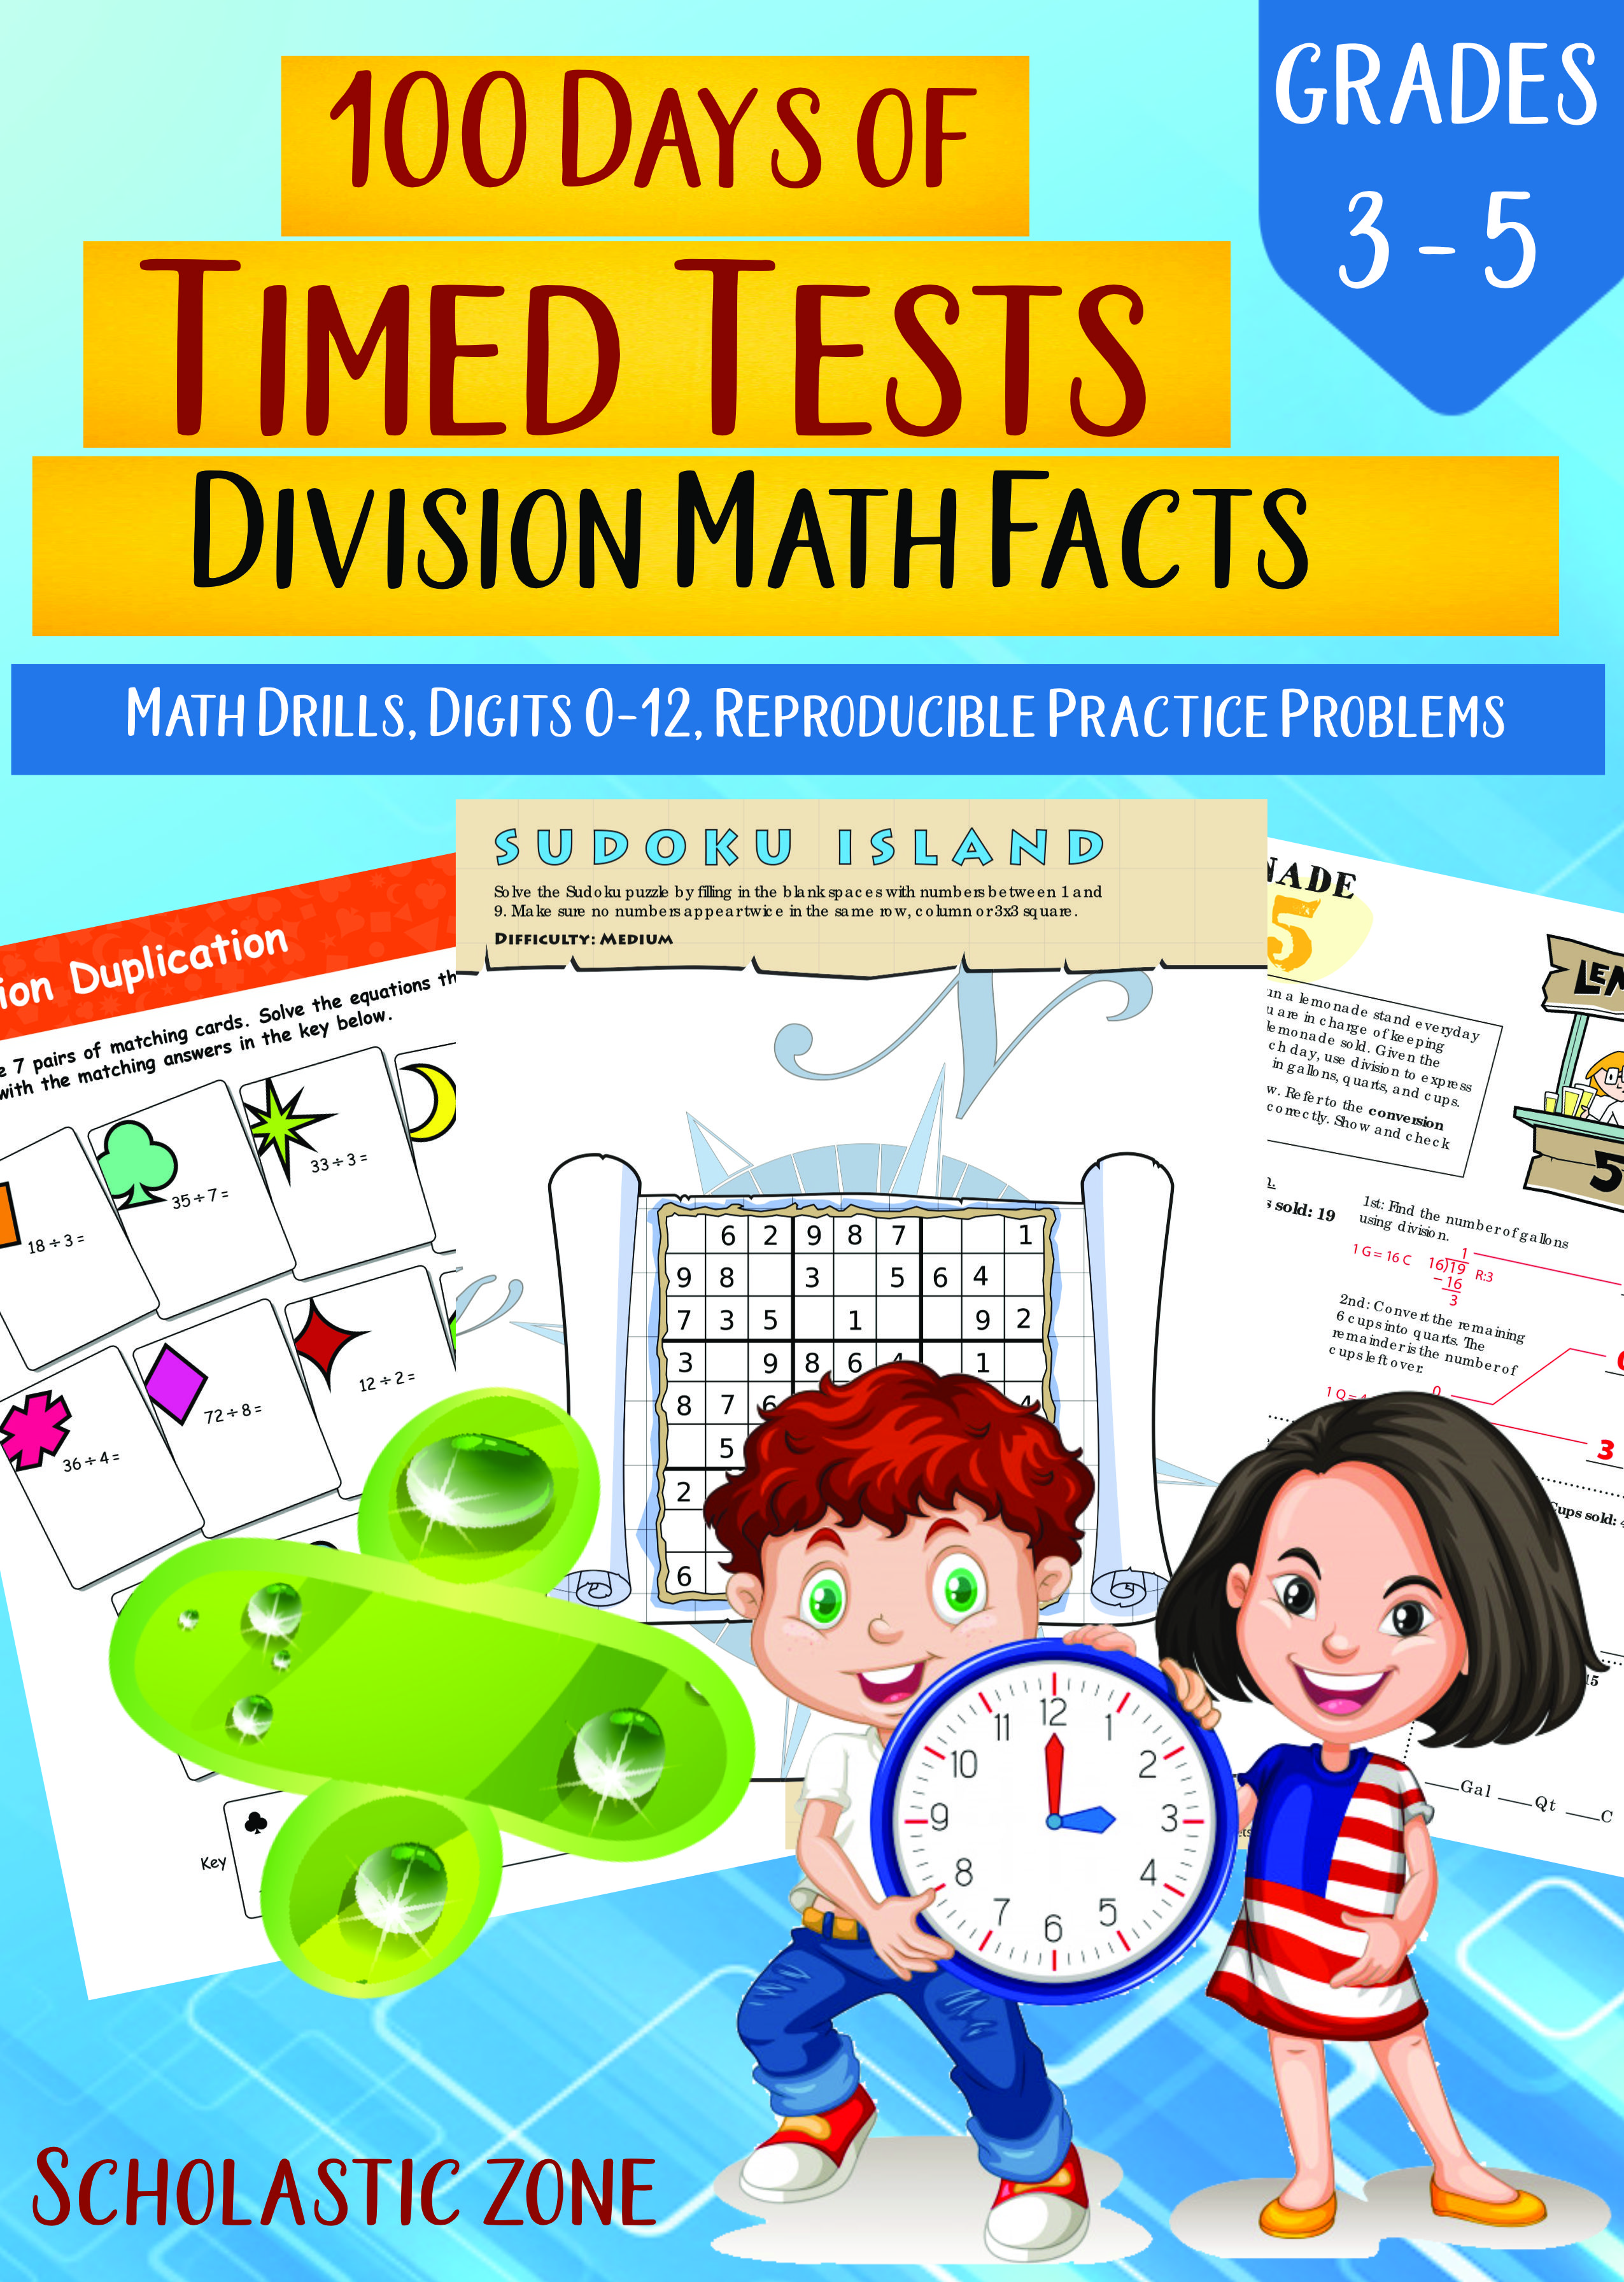 100 Days Of Timed Tests Division Math Facts Grades 3 5